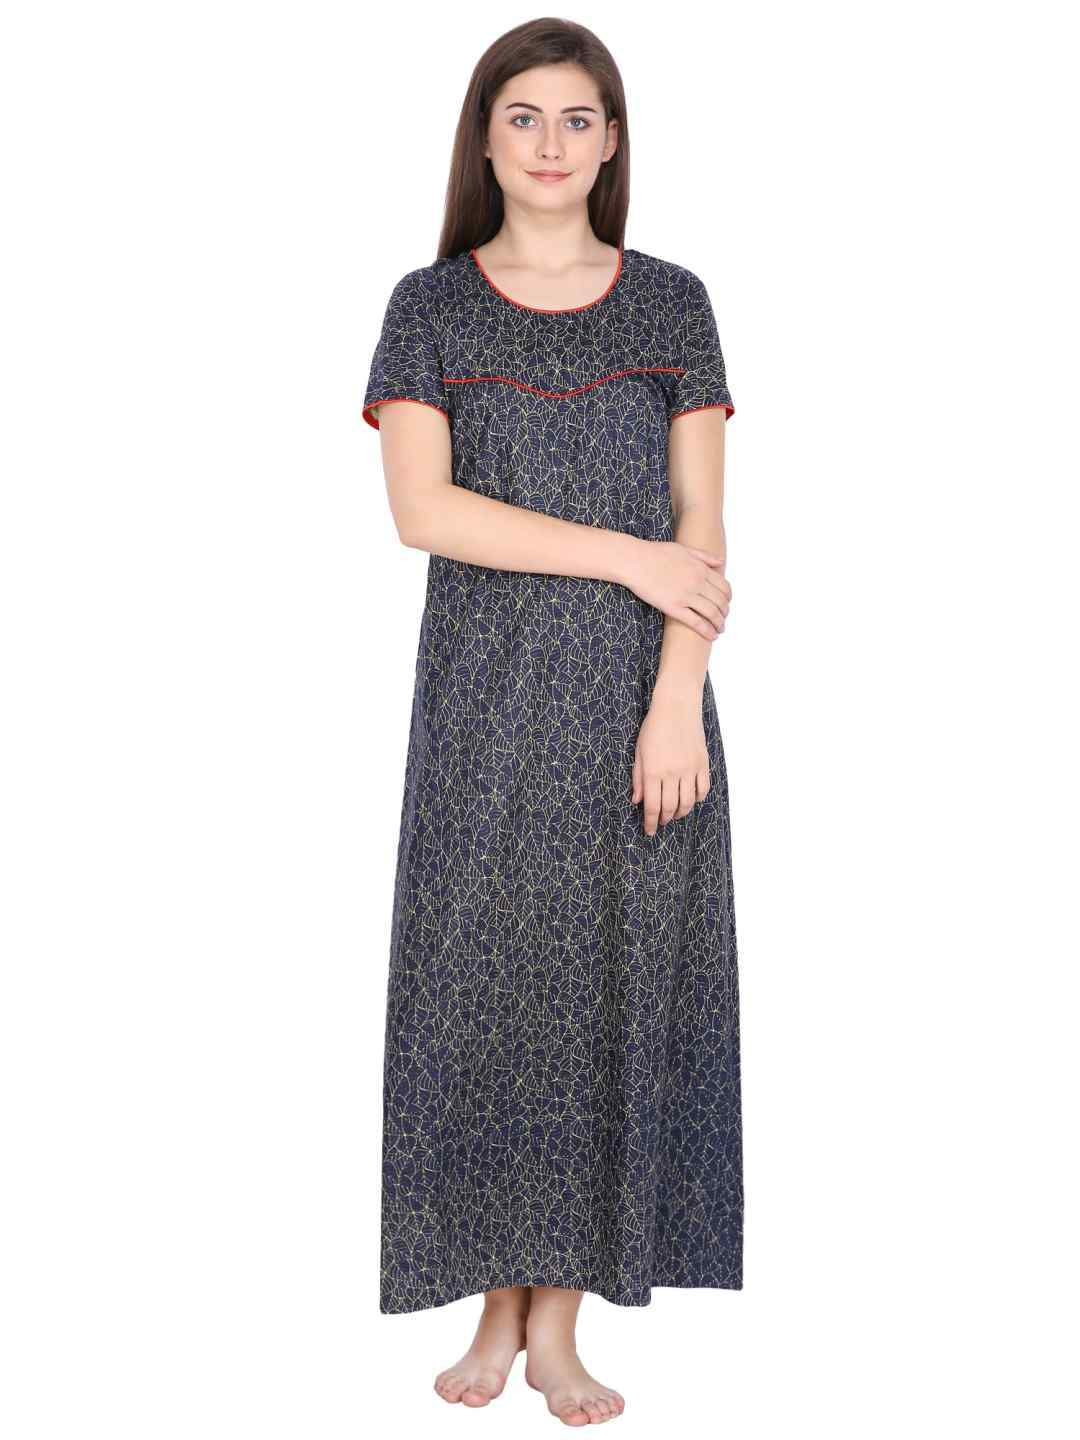 Klamotten Women's Cotton Nightdress C2N191